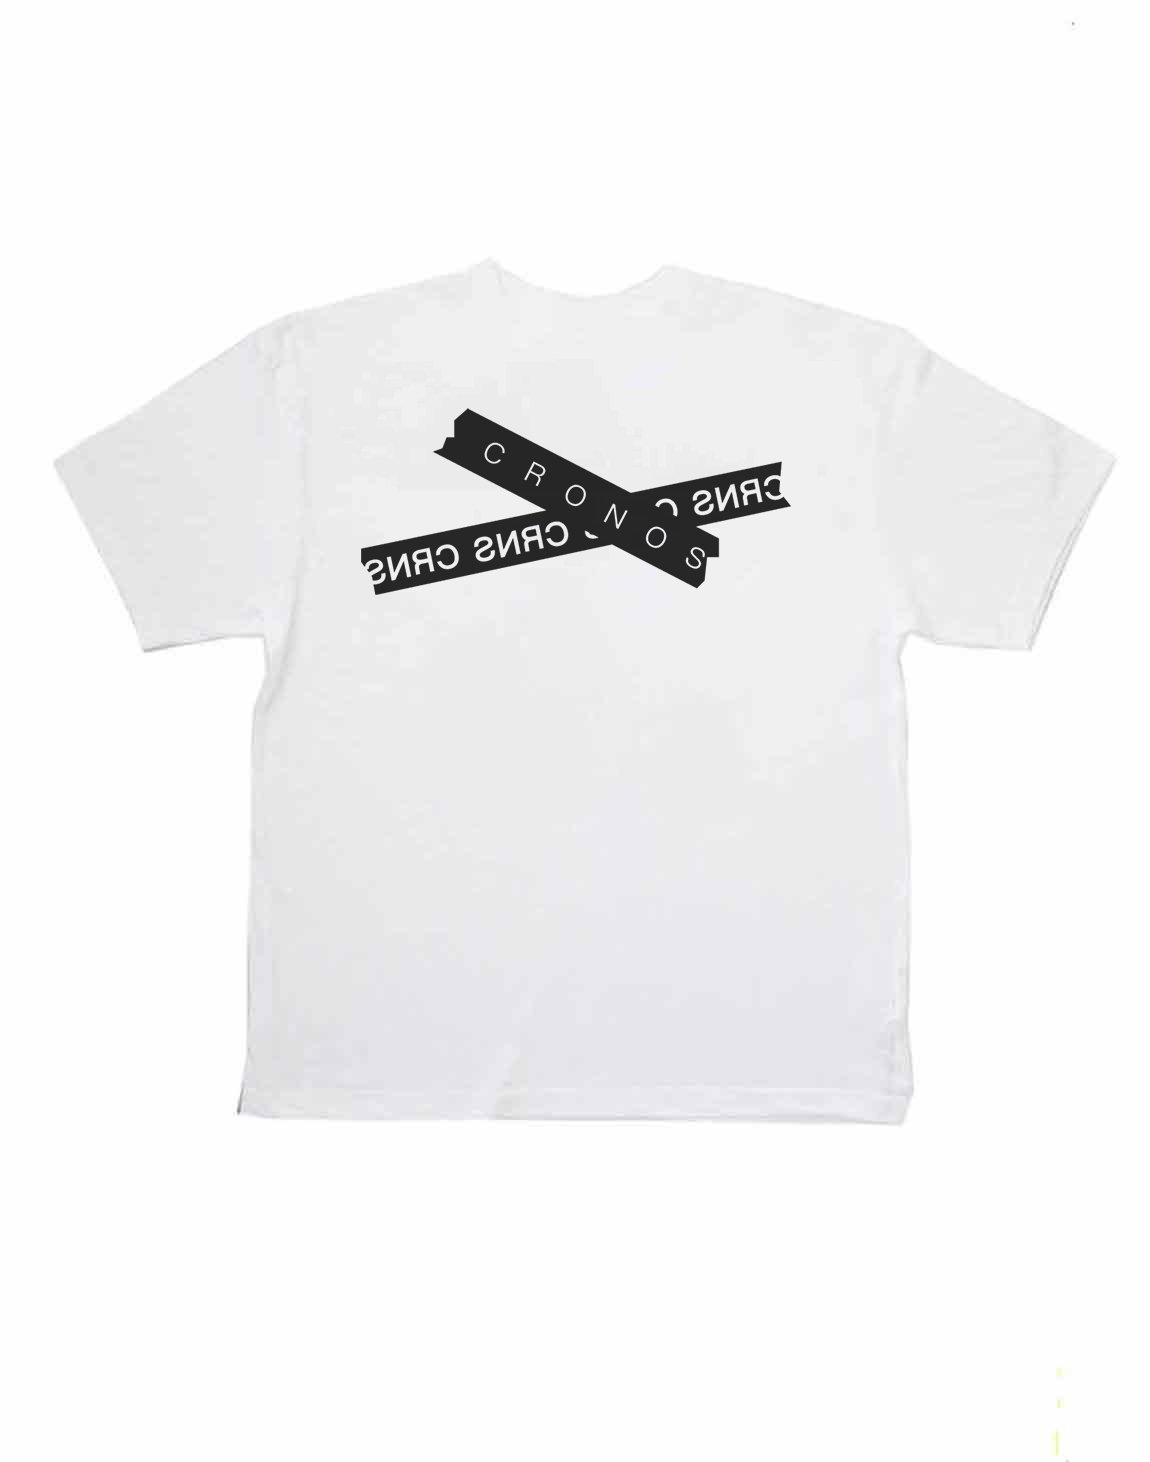 <img class='new_mark_img1' src='https://img.shop-pro.jp/img/new/icons1.gif' style='border:none;display:inline;margin:0px;padding:0px;width:auto;' />CRONOS TAPE LOGO OVER SIZE T-SHIRTS【WHITE】